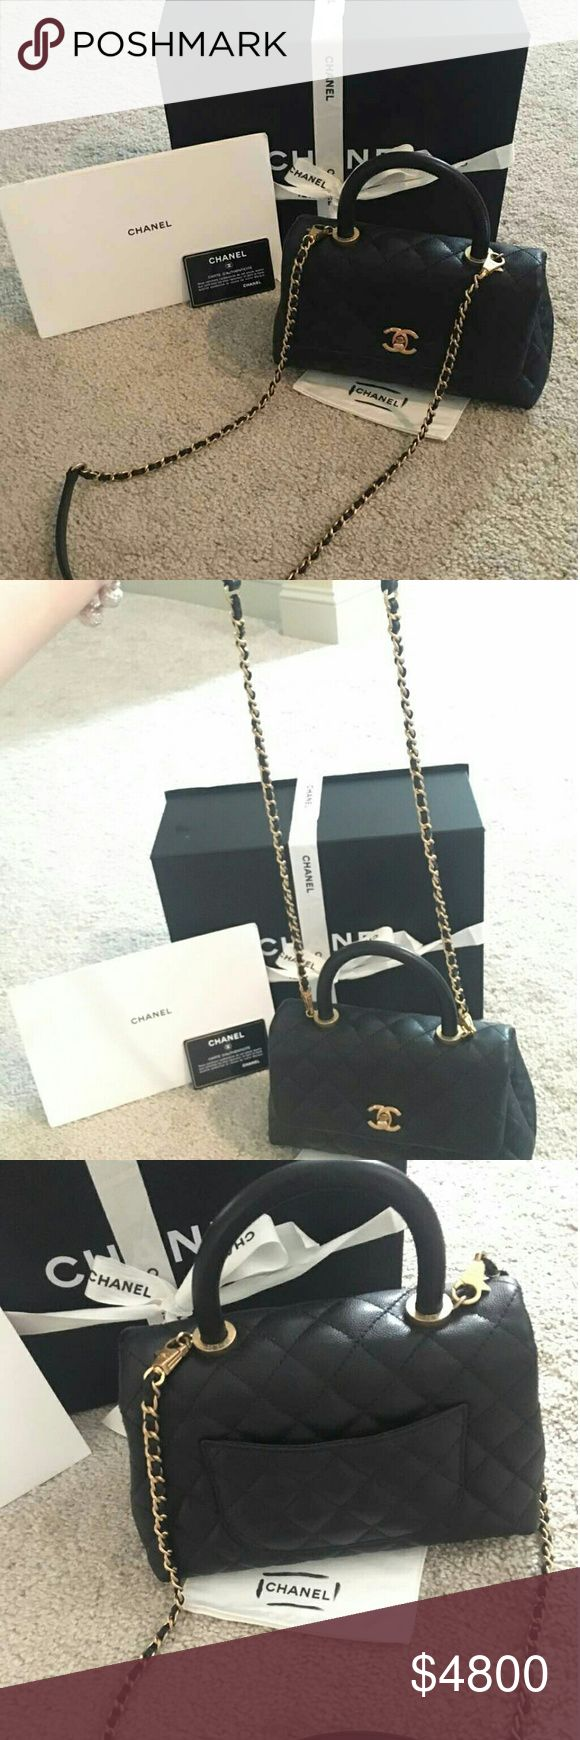 Chanel Coco Handle black cavier with gold chain It is like brand new . Just use once . There is no dirt or stain . 100% Authentic . I just bought it in Feb _2017. There is no receipt. It does come with box ,Authenticity card, ribbon . Accept P  P. CHANEL Bags Crossbody Bags